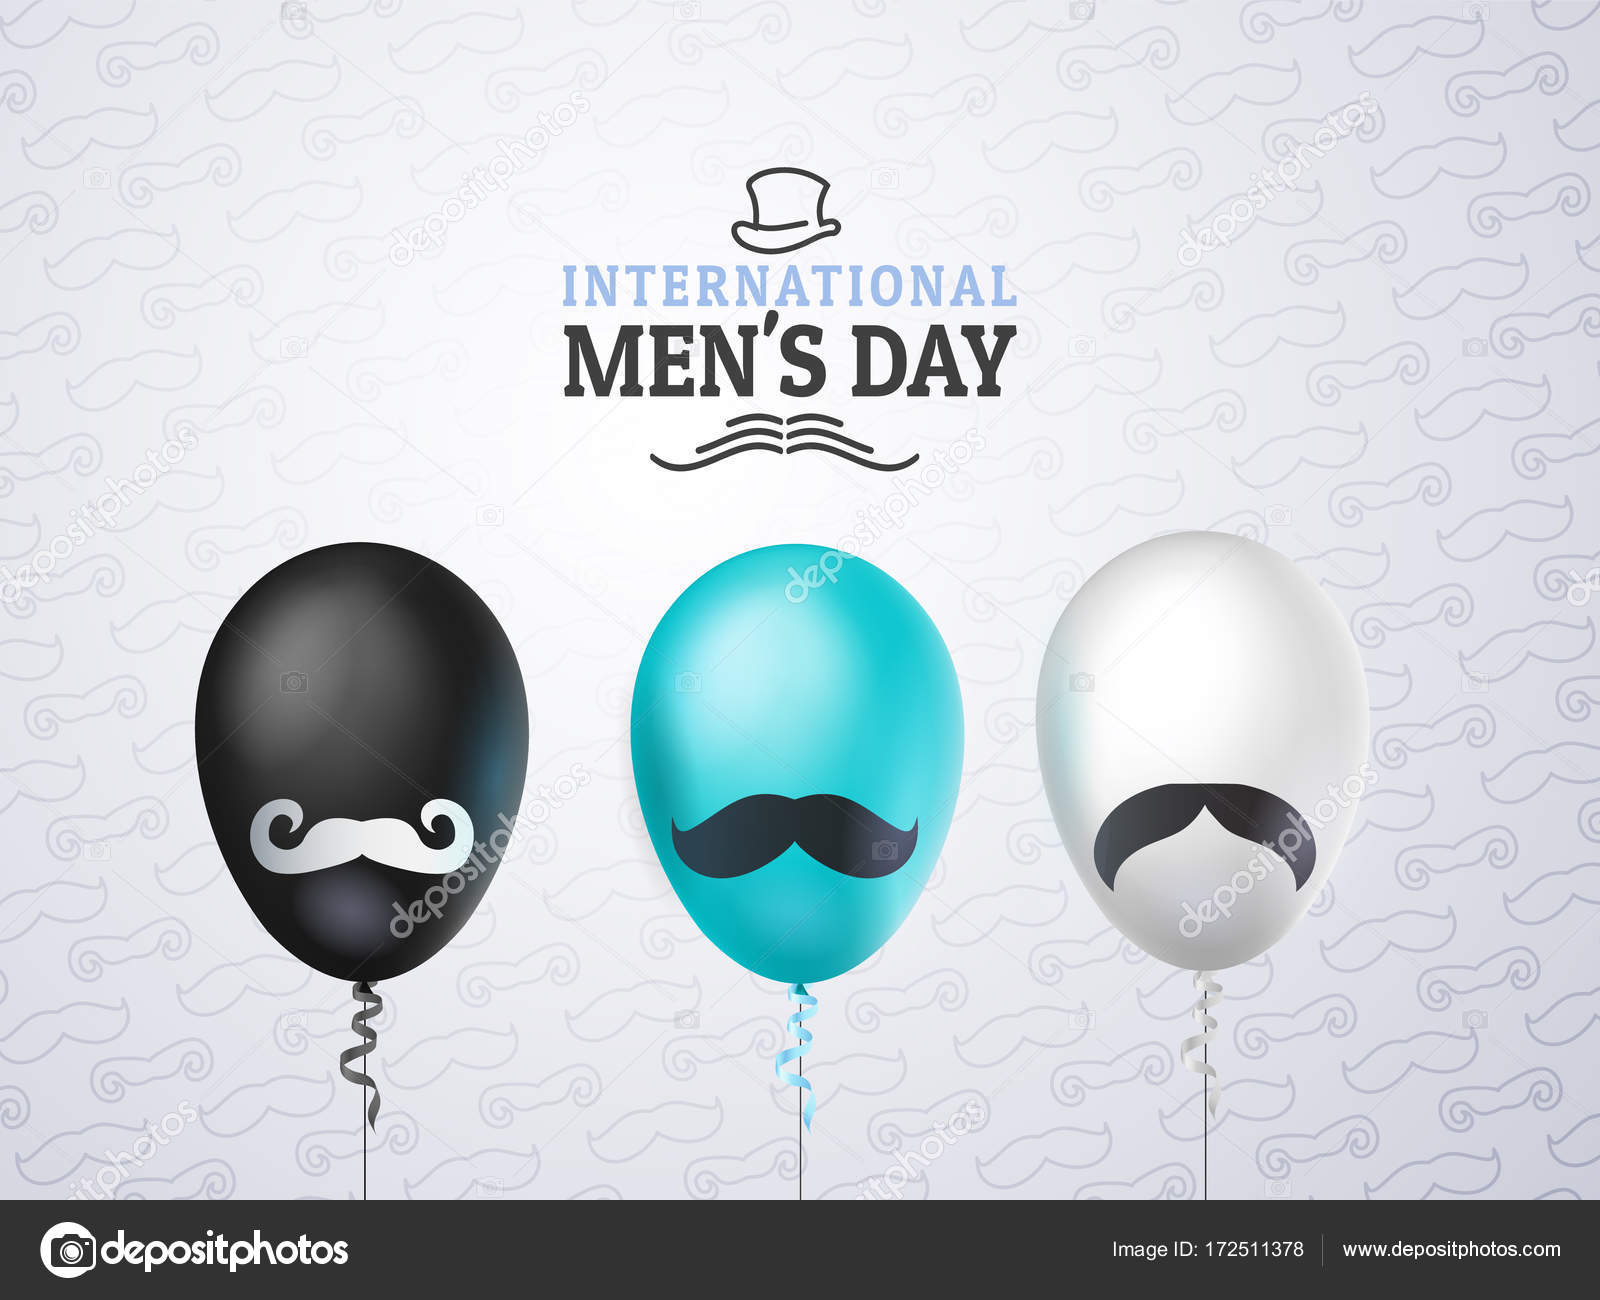 international men's day - 1000×830